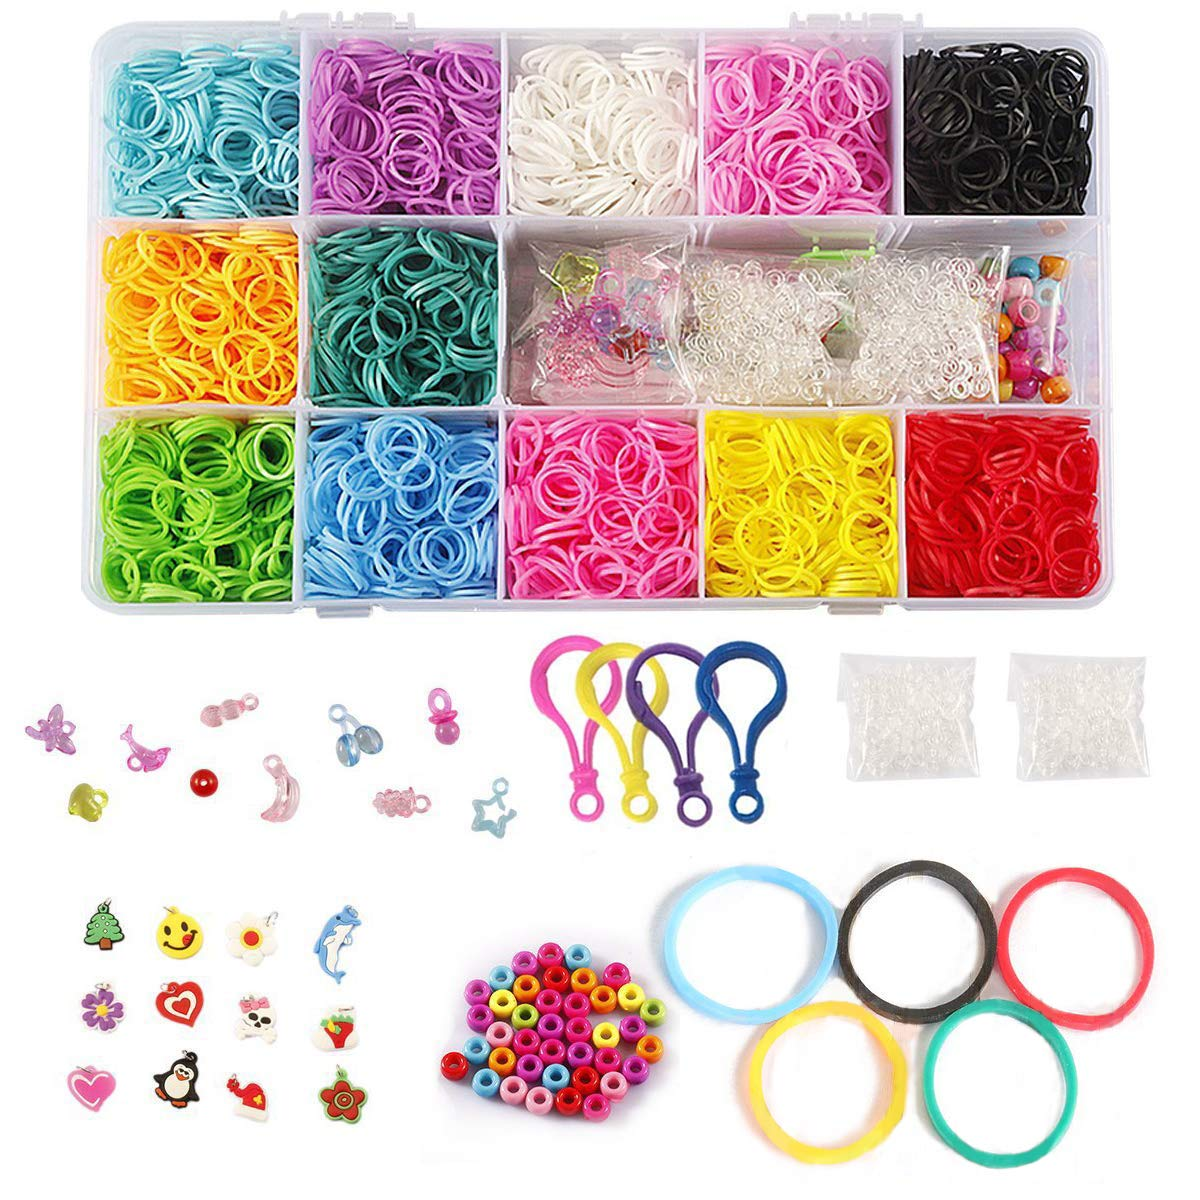 STSTECH DIY Loom Refill Kit for Crafting Gadgets Friendship Bracelet -5500 Rubber Bands Set with 6 Hooks,100 S-Clips,12 Silicone Charms,45 beads (12 Rainbow Colors) by STSTECH